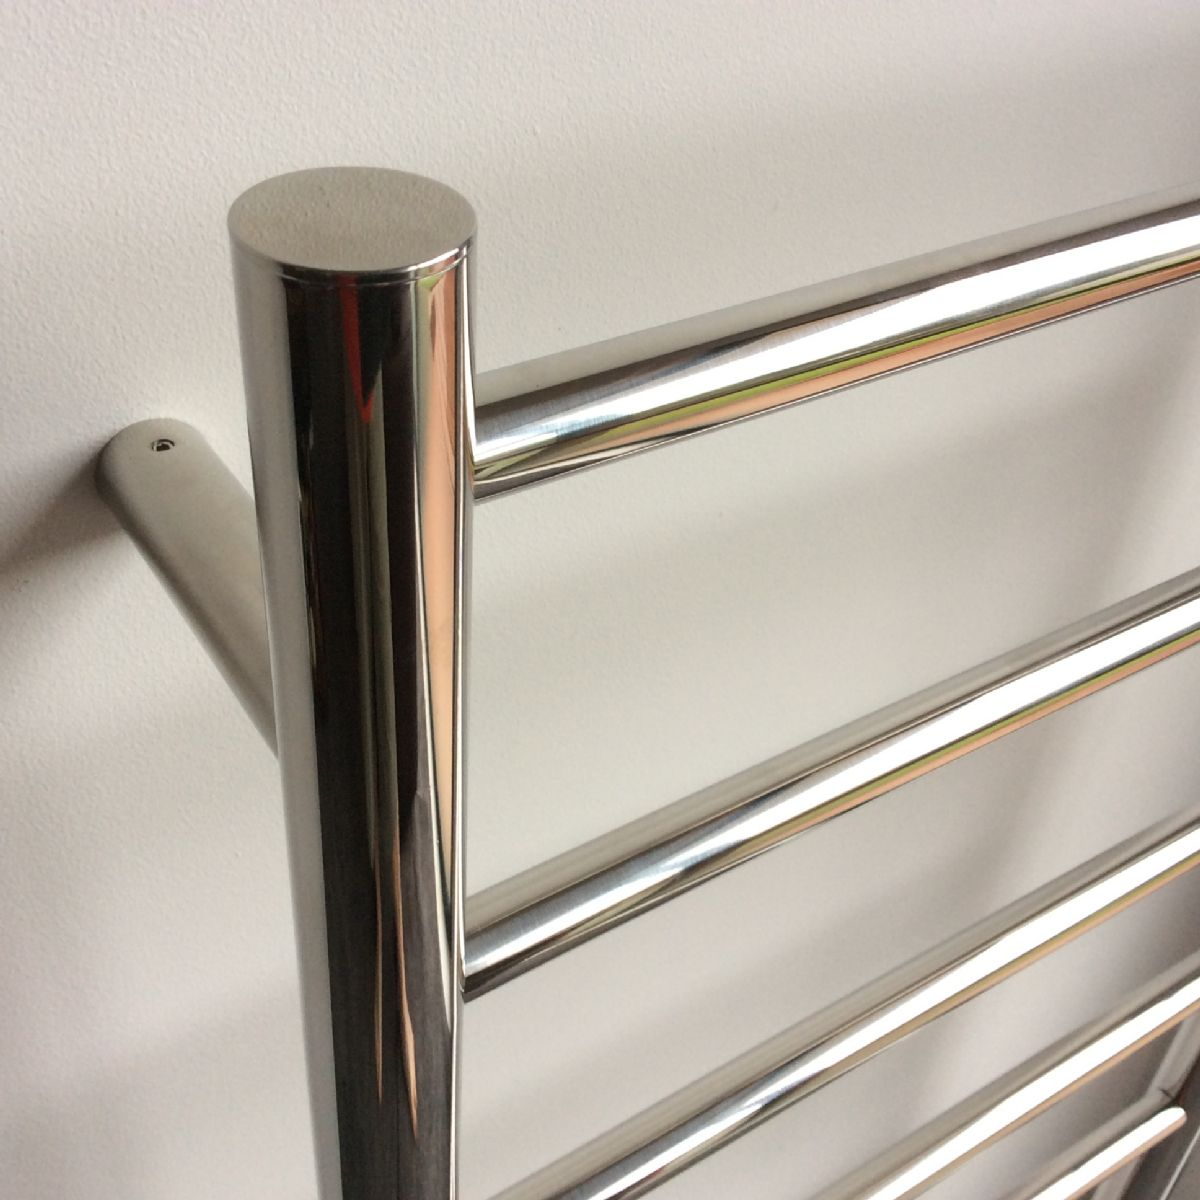 Heated Towel Rail Newtech 7 Bar Round Ladder 60w Stainless Wiring Electric